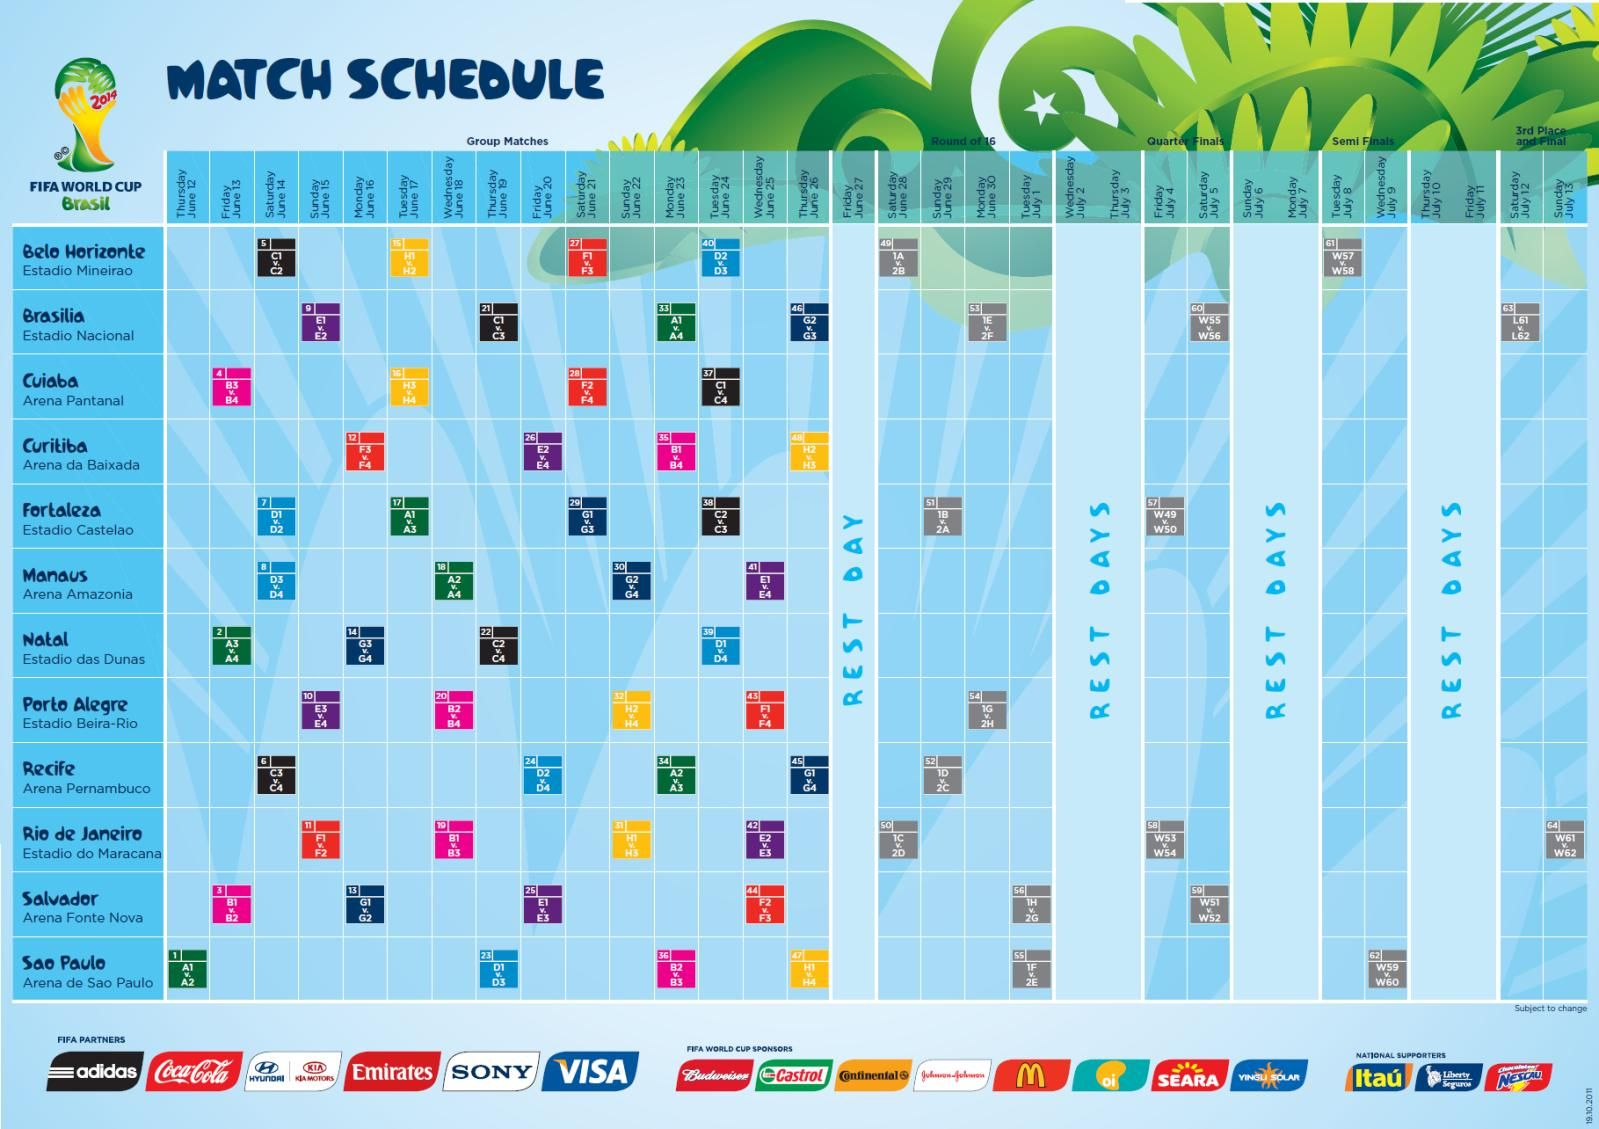 2014 Fifa World Cup Match Schedule Pdf Download World Cup Schedule Fifa 2014 World Cup World Cup Match